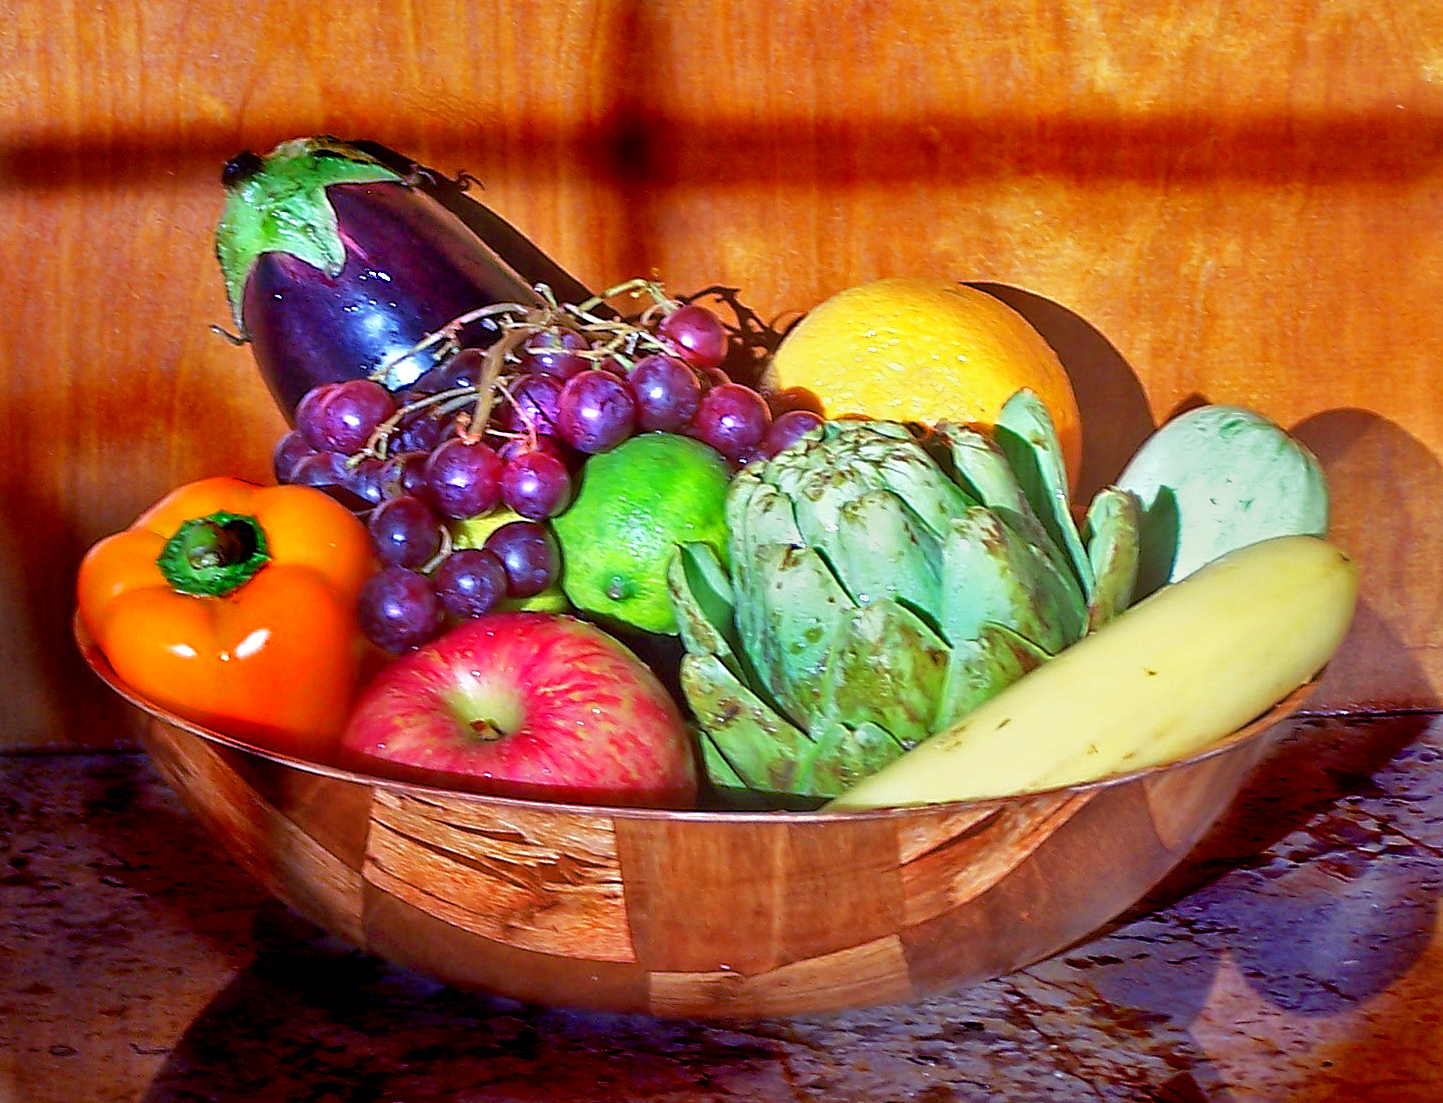 Make your meals colorful and your health will be wonderful